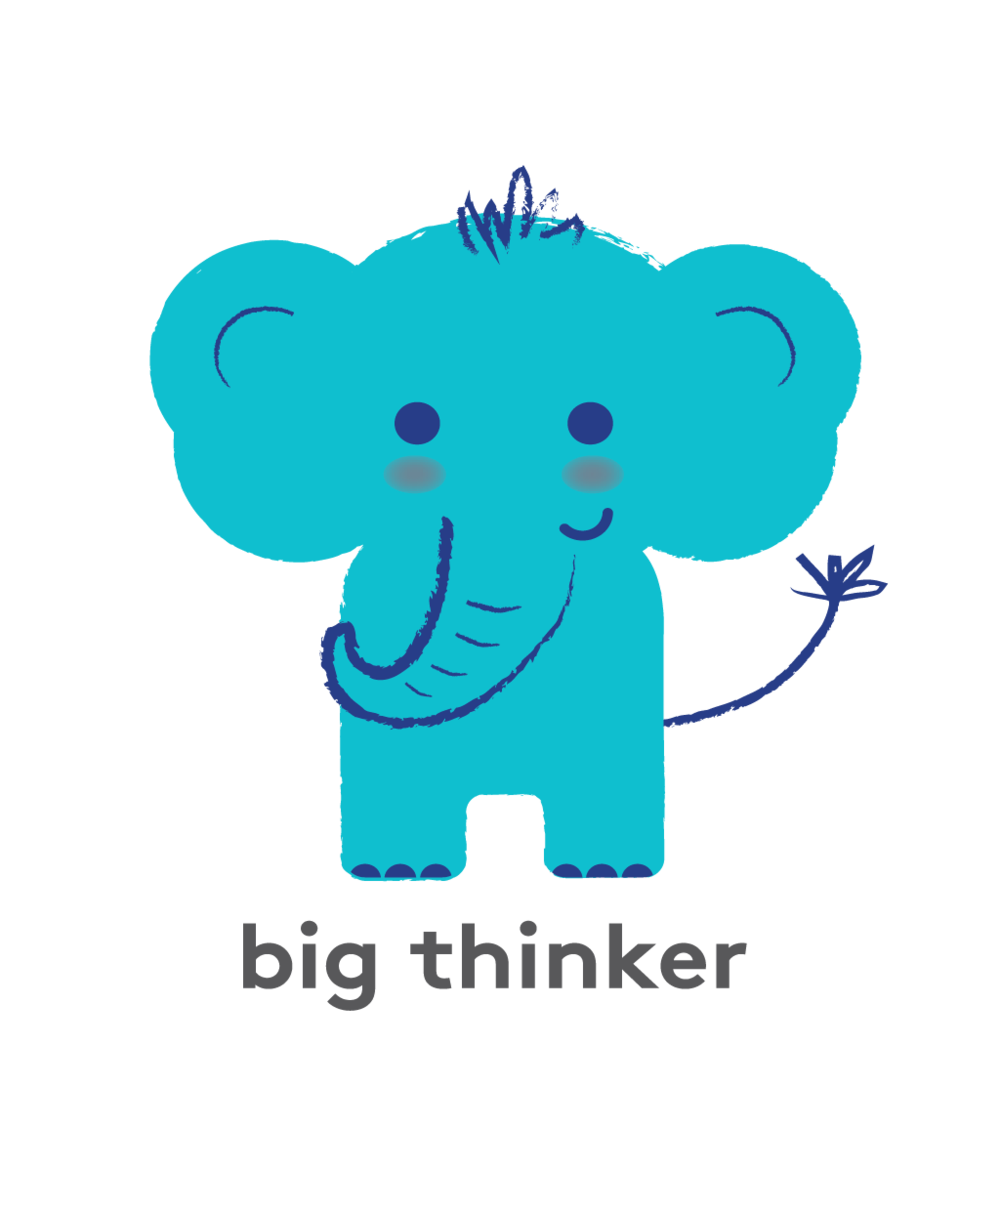 Elephant: Big Thinker